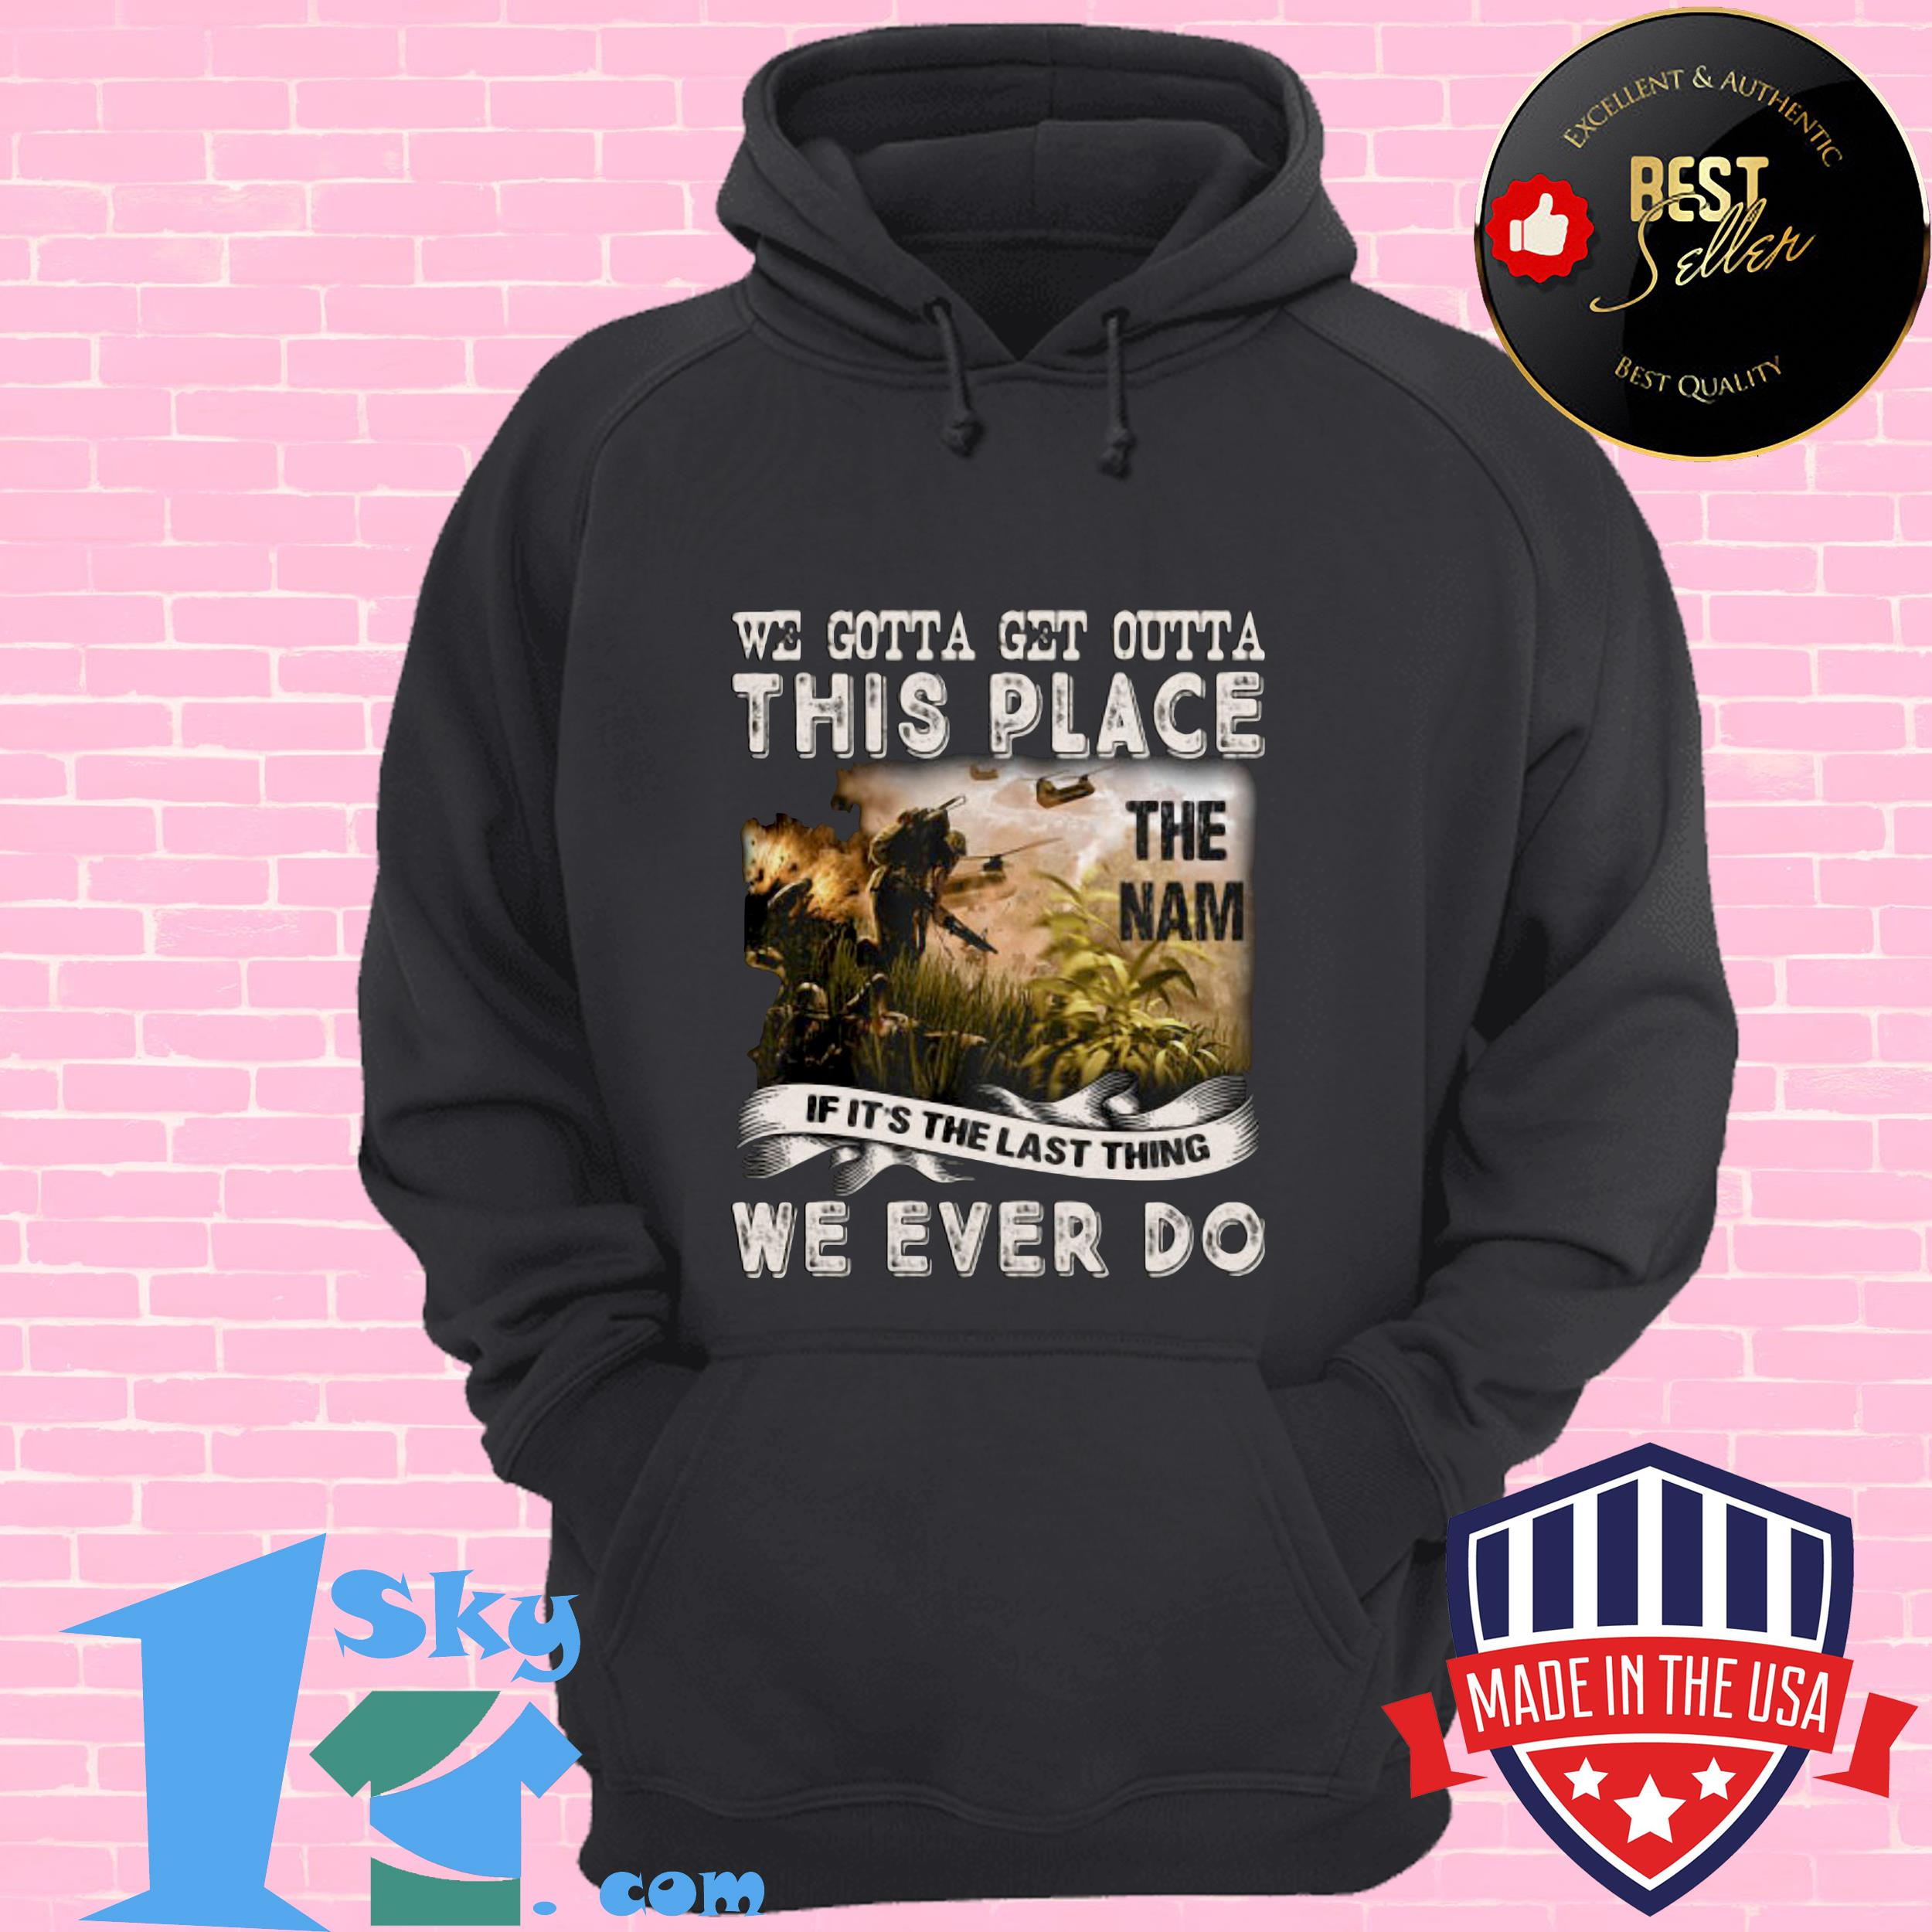 we gotta get outta this place the name we ever do veteran hoodie - We Gotta Get Outta This Place The Name We Ever Do Veteran shirt